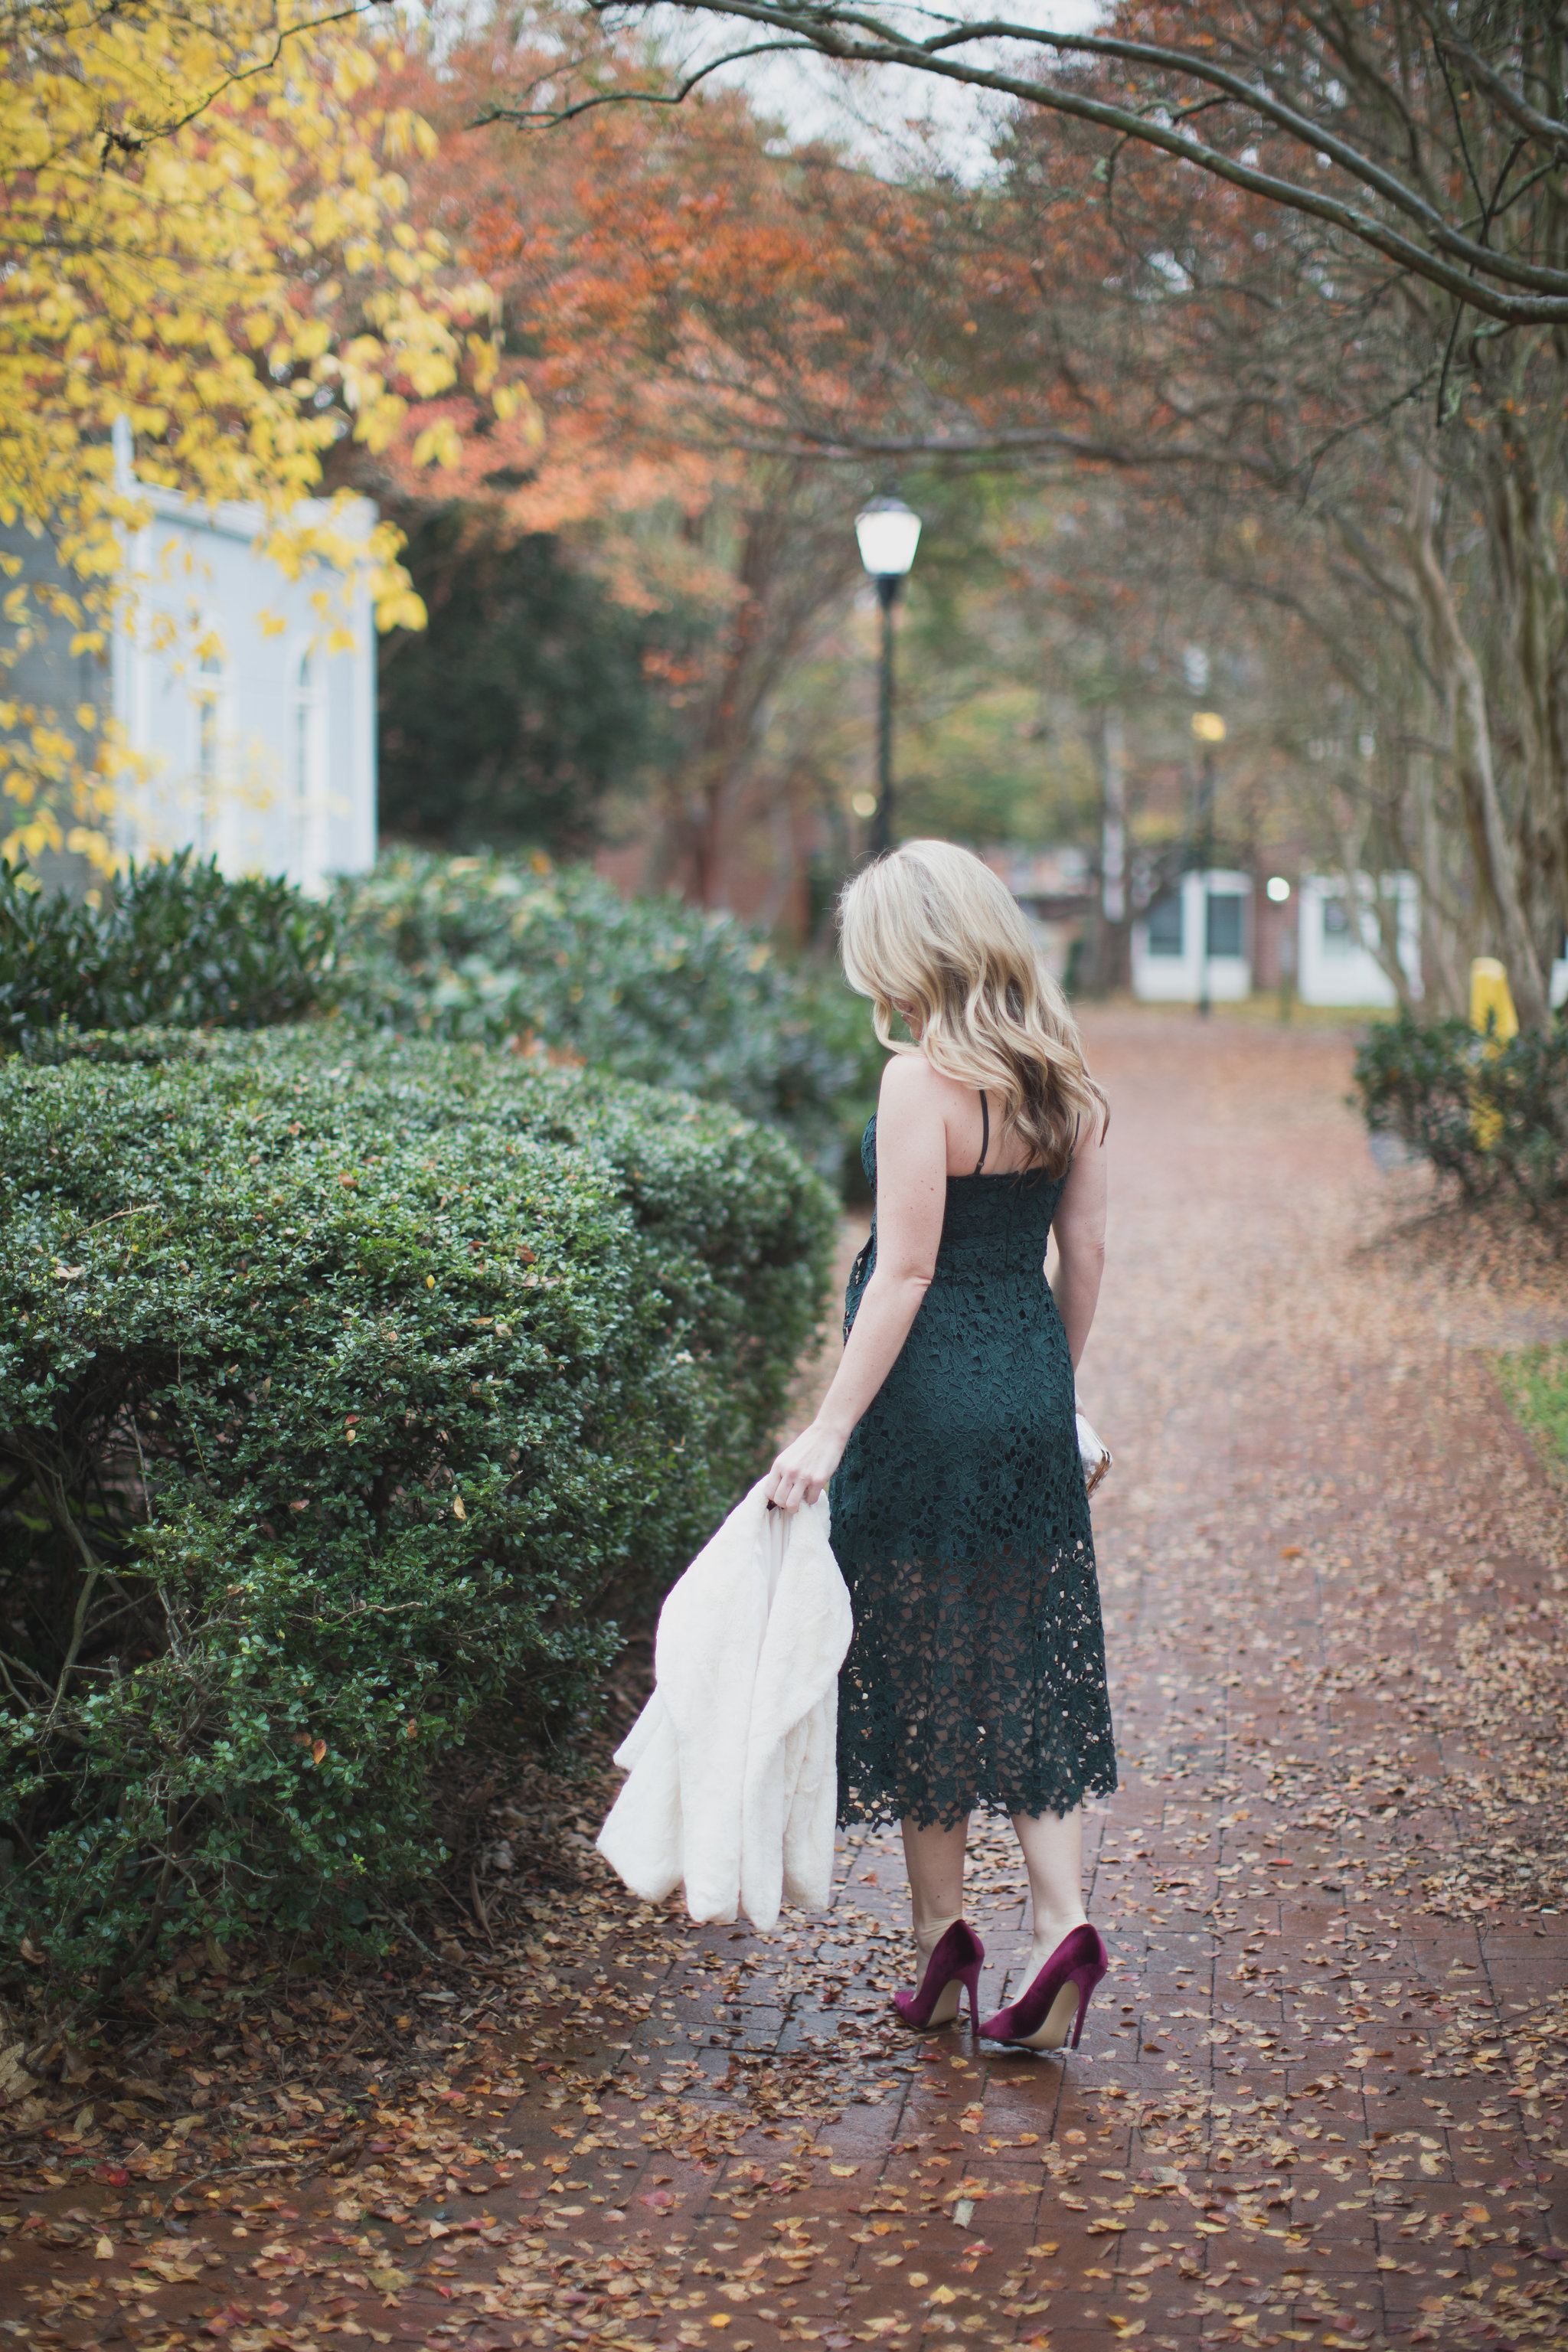 Today on ECW I am sharing the only dress you need this holiday season. Best part....it is under $90 and comes in 5 different colors!! - The Perfect Holiday Dress under $100 by North Carolina fashion blogger Every Chic Way